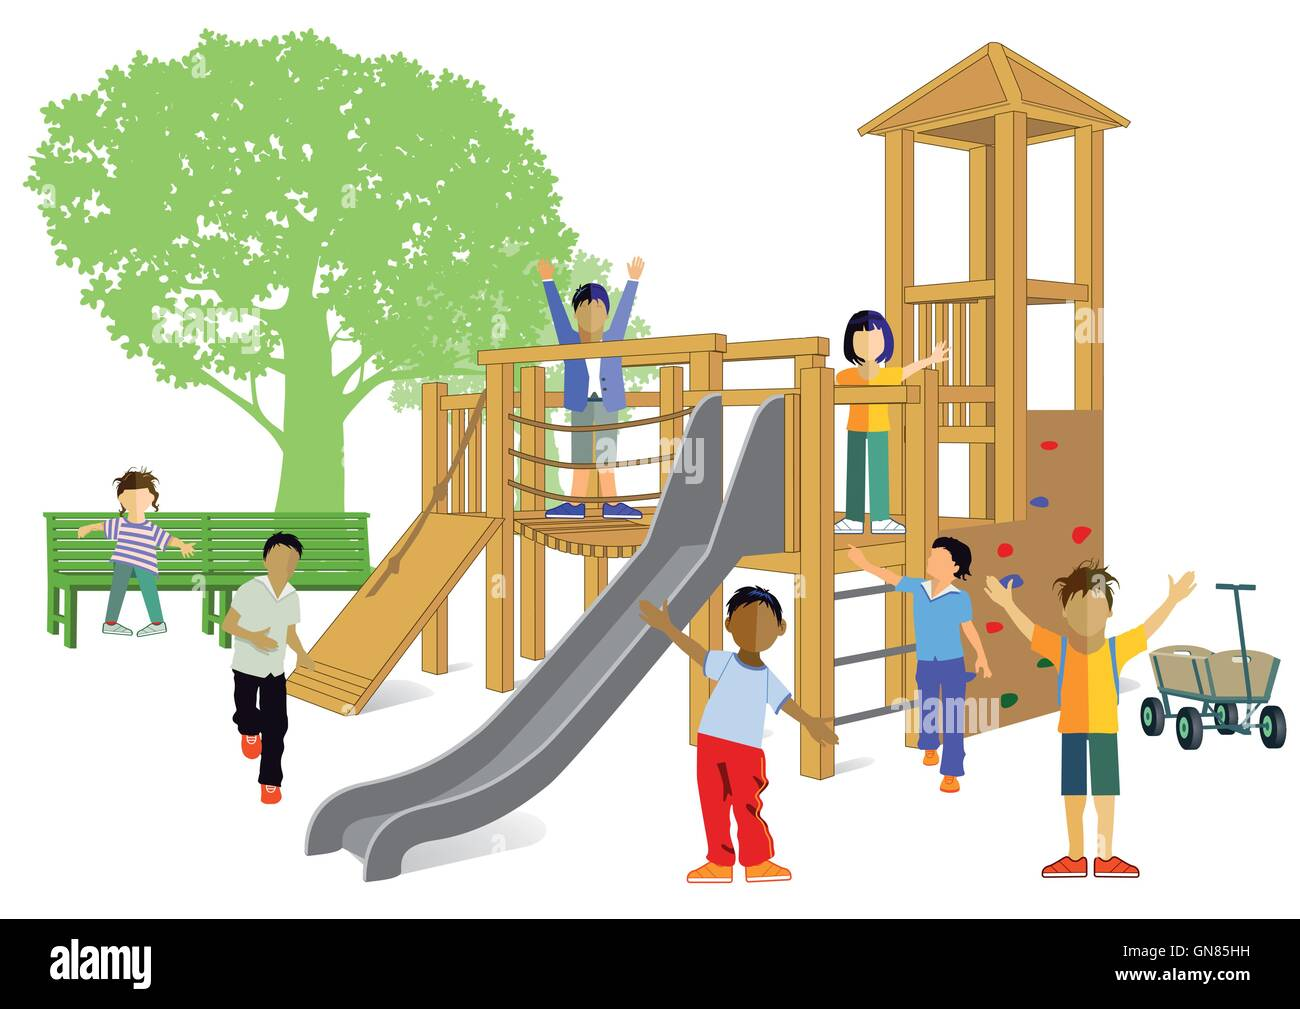 Children's playground - Stock Image